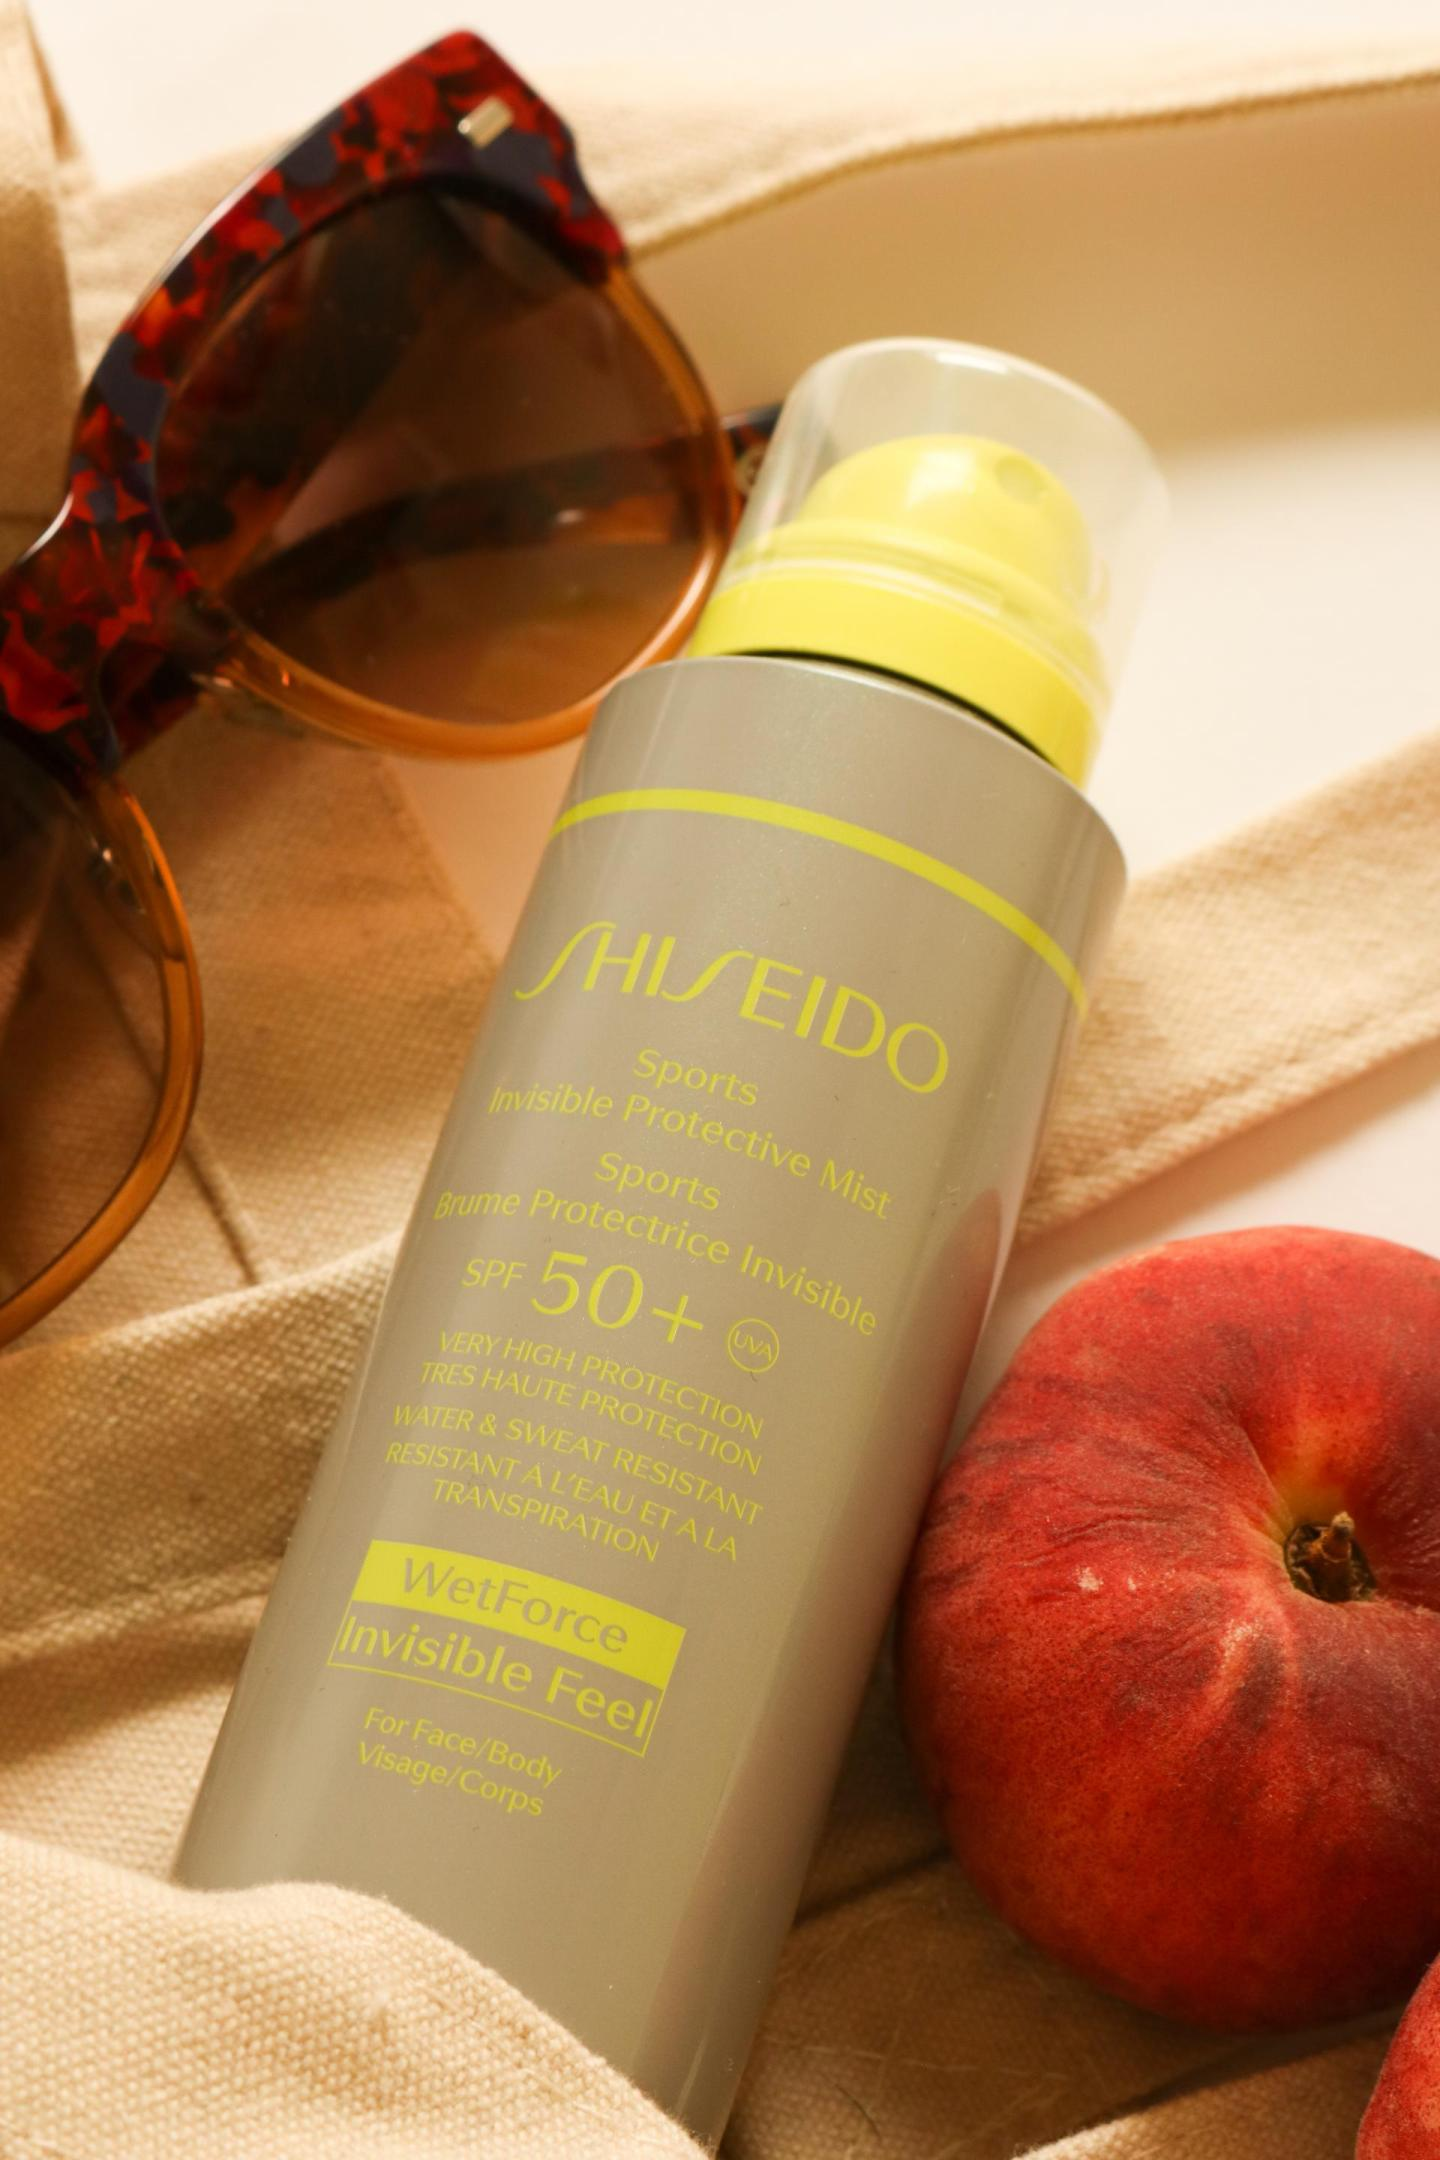 Sports Invisible Protective Mist SPF50+ with wet force and invisible feel